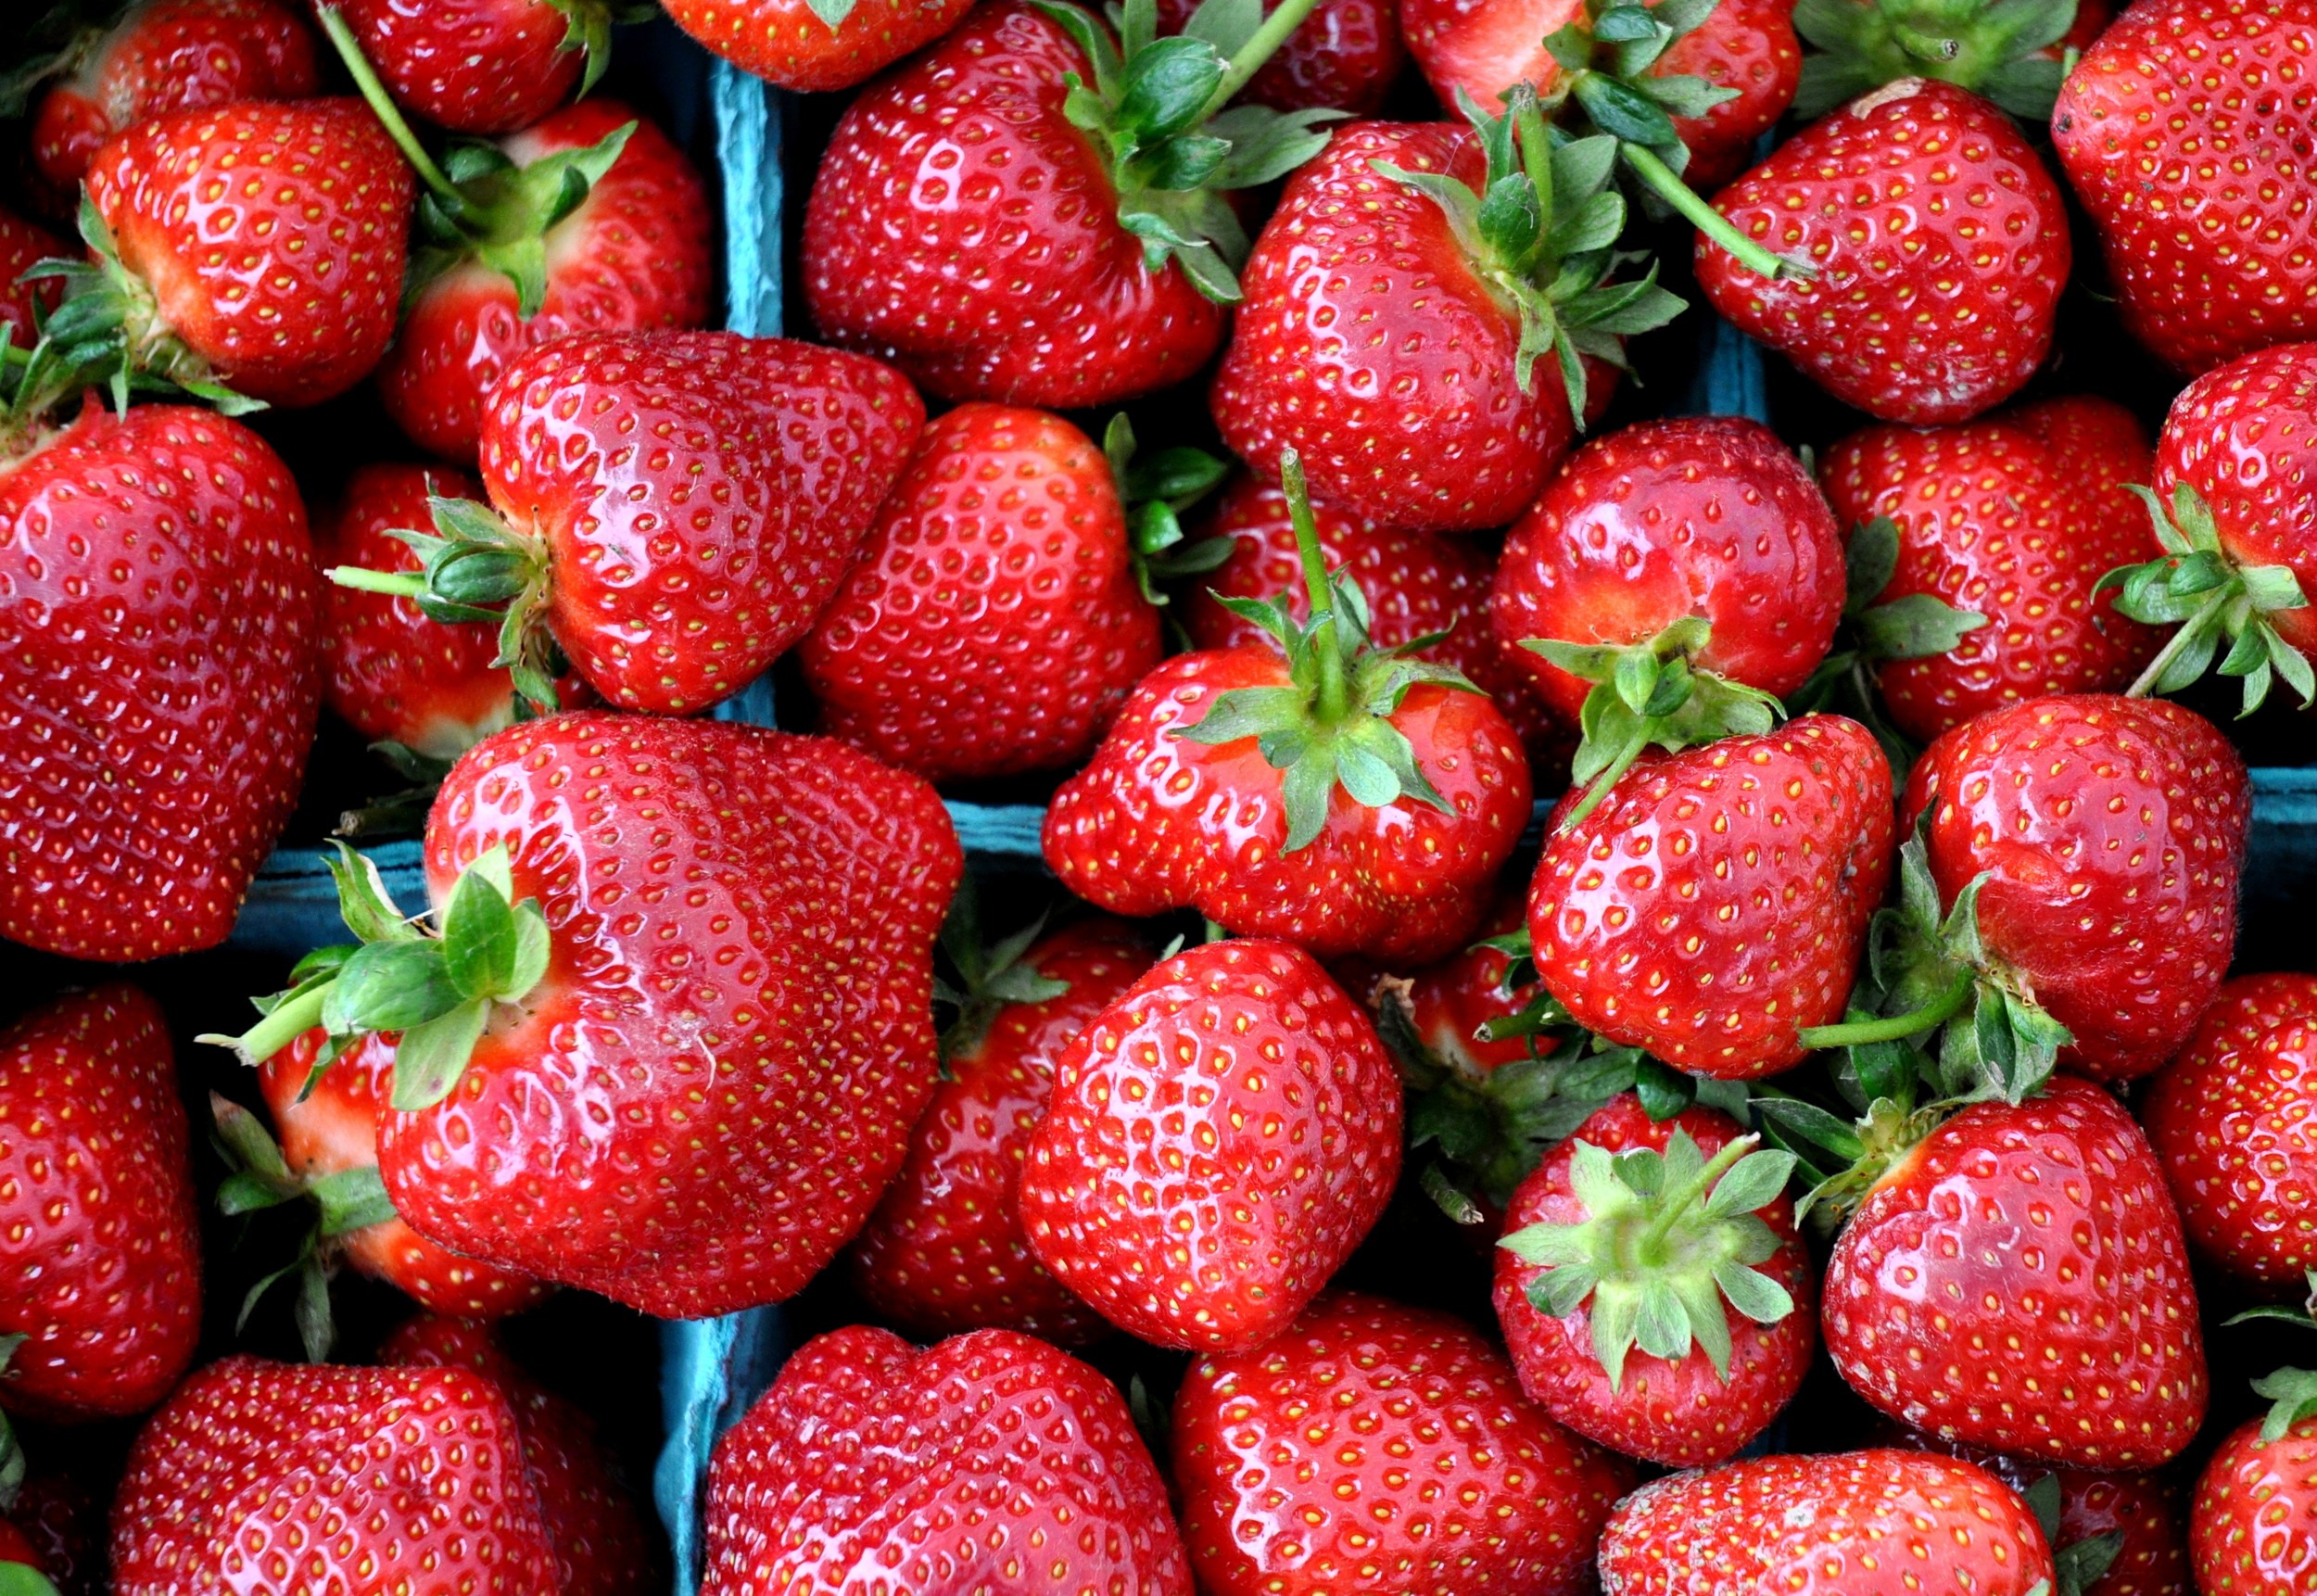 Fresh strawberries from Gaia's Natural Goods. Photo copyright 2012 by Zachary D. Lyons.